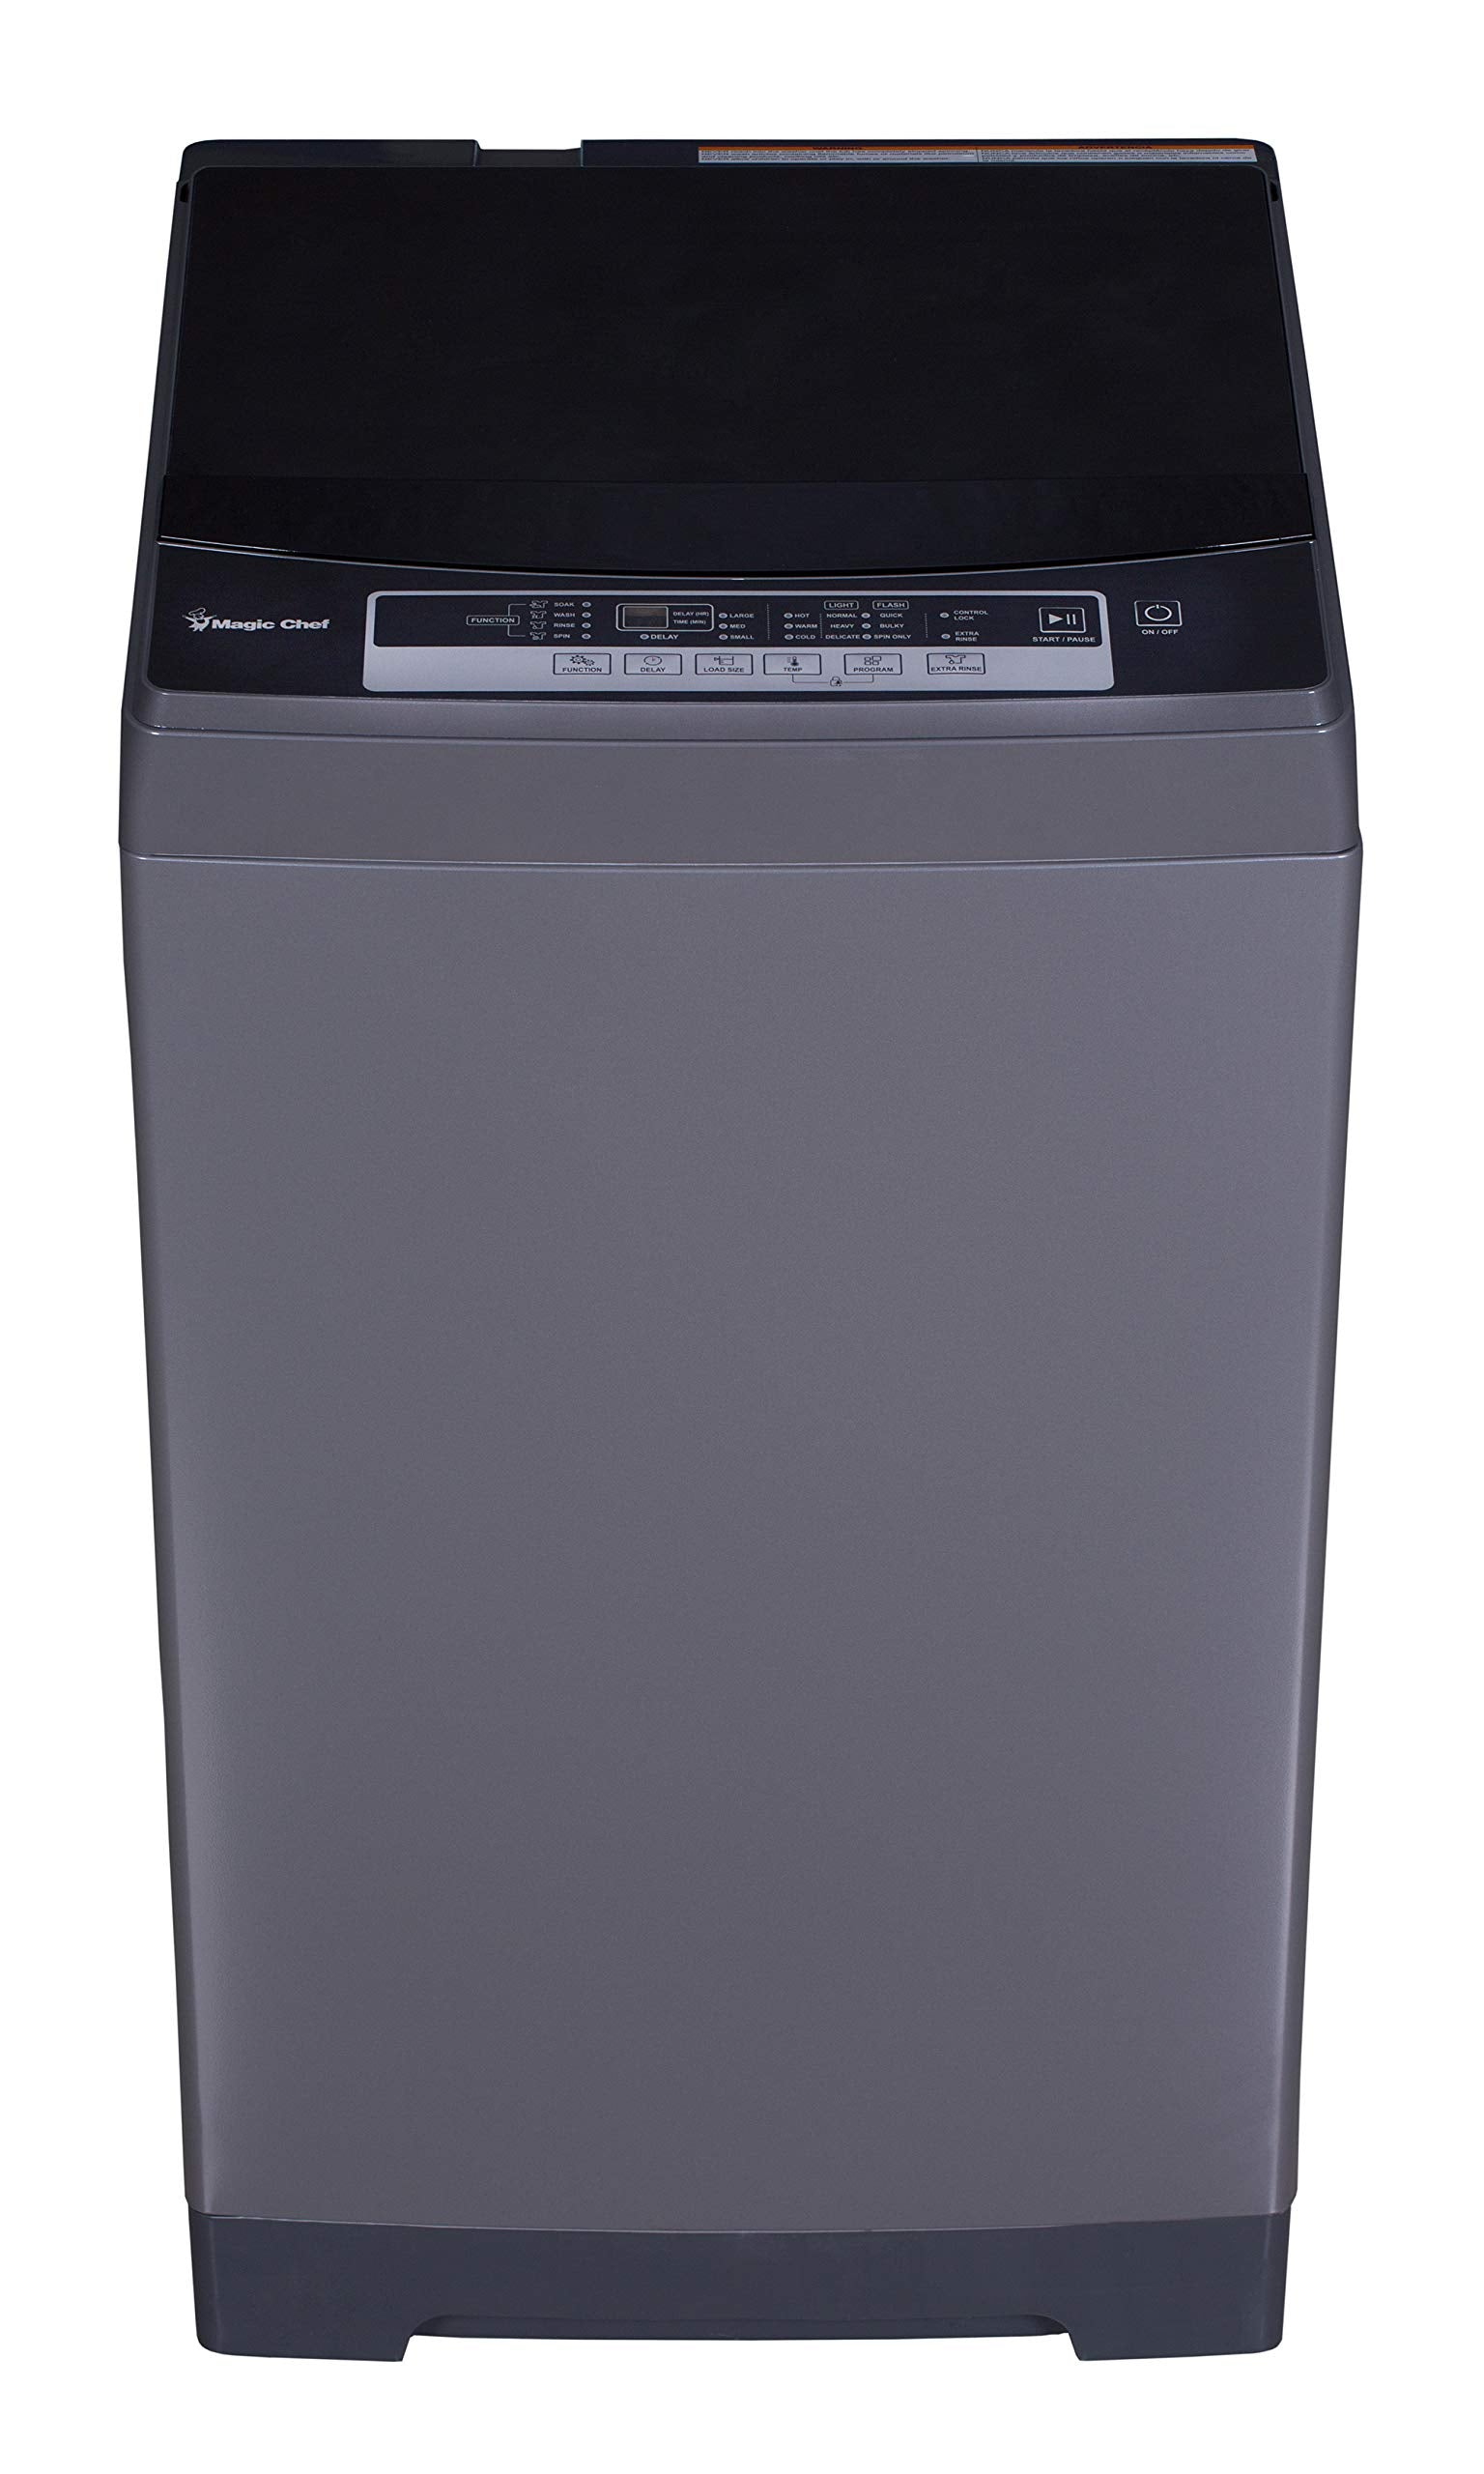 Magic Chef MCSTCW16S4 Stainless Steel 1.6 Cu. Ft. Compact Top-Load Washer,